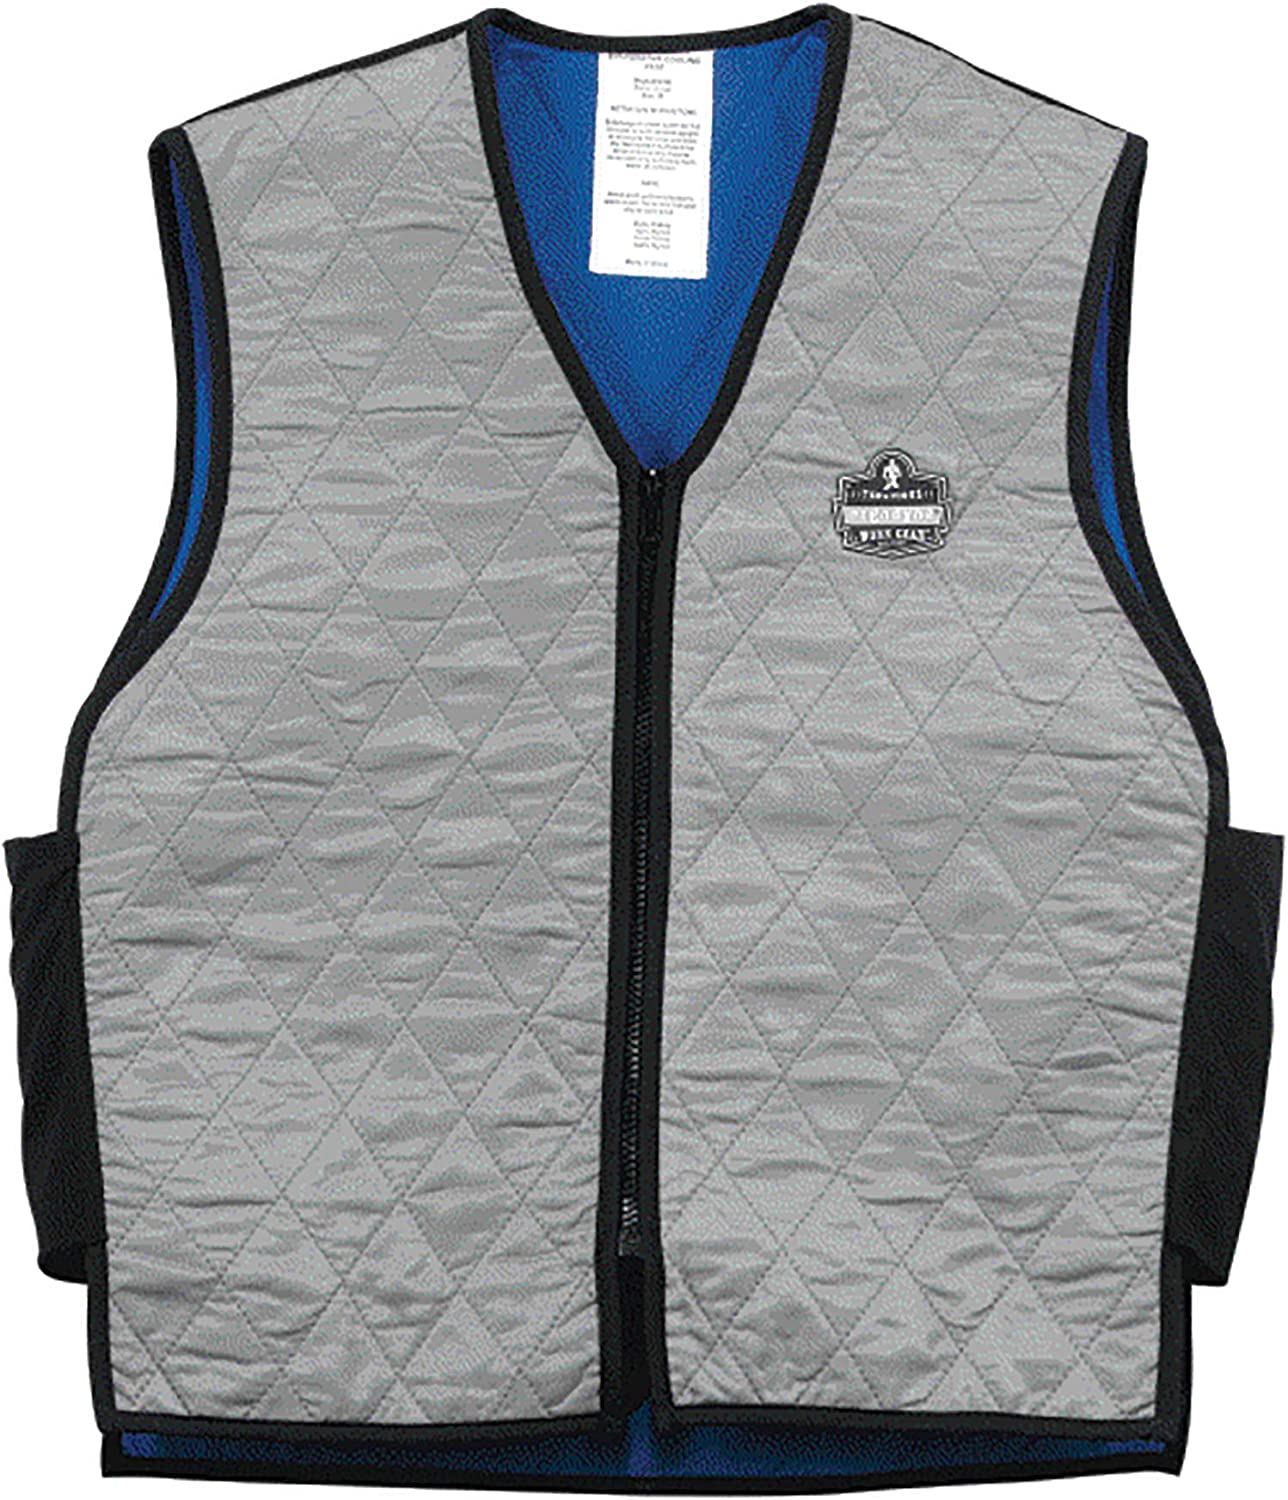 Ergodyne Chill-Its 6665 Evaporative Cooling Vest - Gray, XX-Large